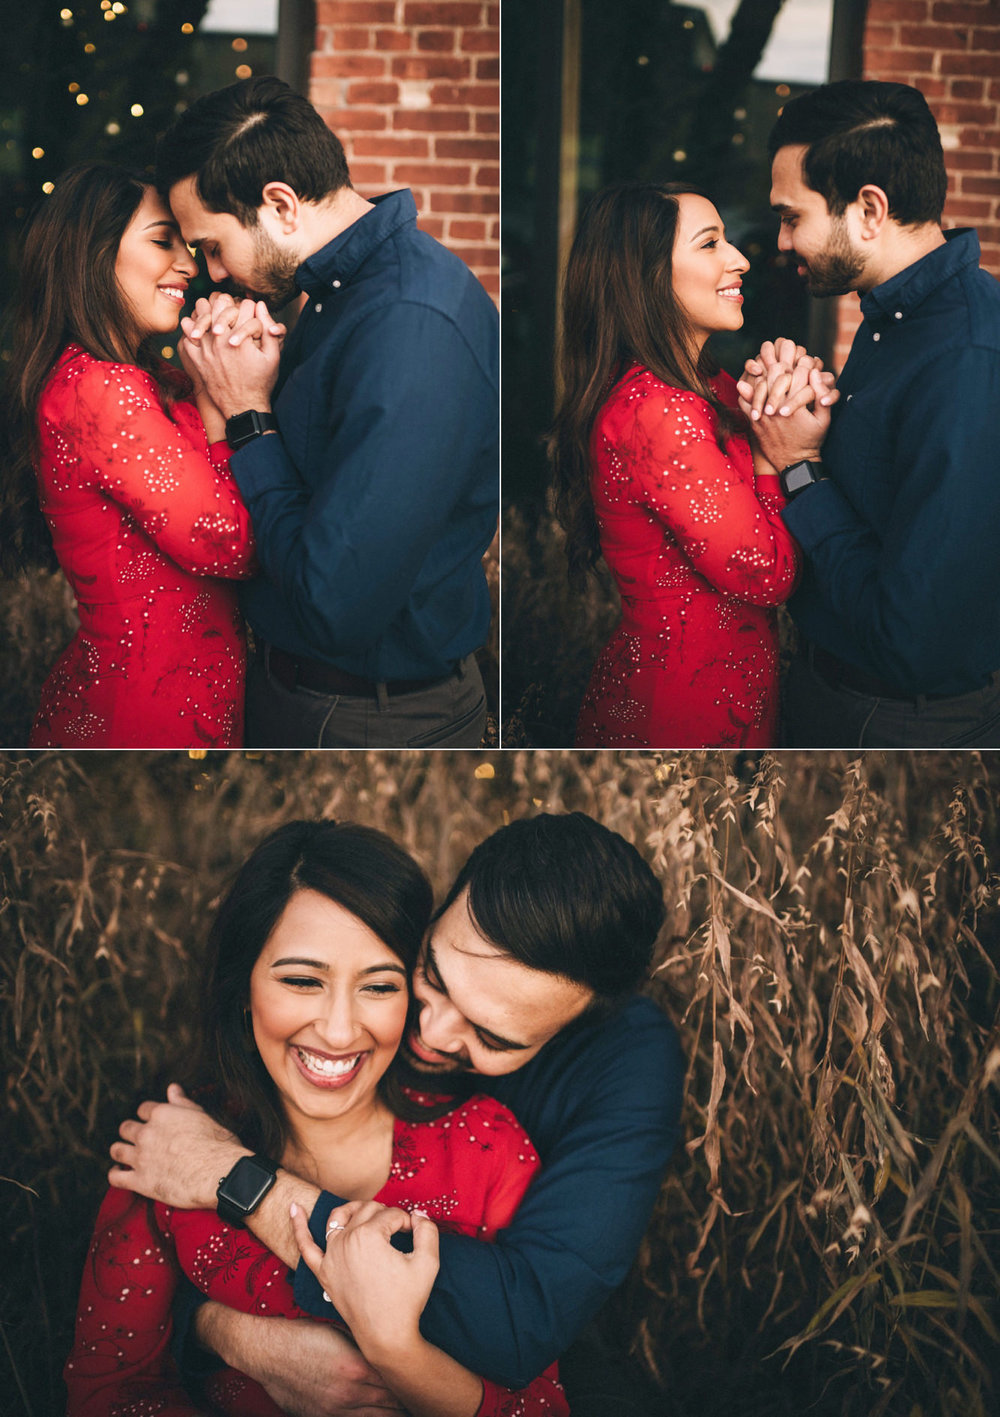 Nulu-Winter-Engagement-Session-By-Kentucky-Wedding-Photographer-Sarah-Katherine-Davis-Photography-14.jpg